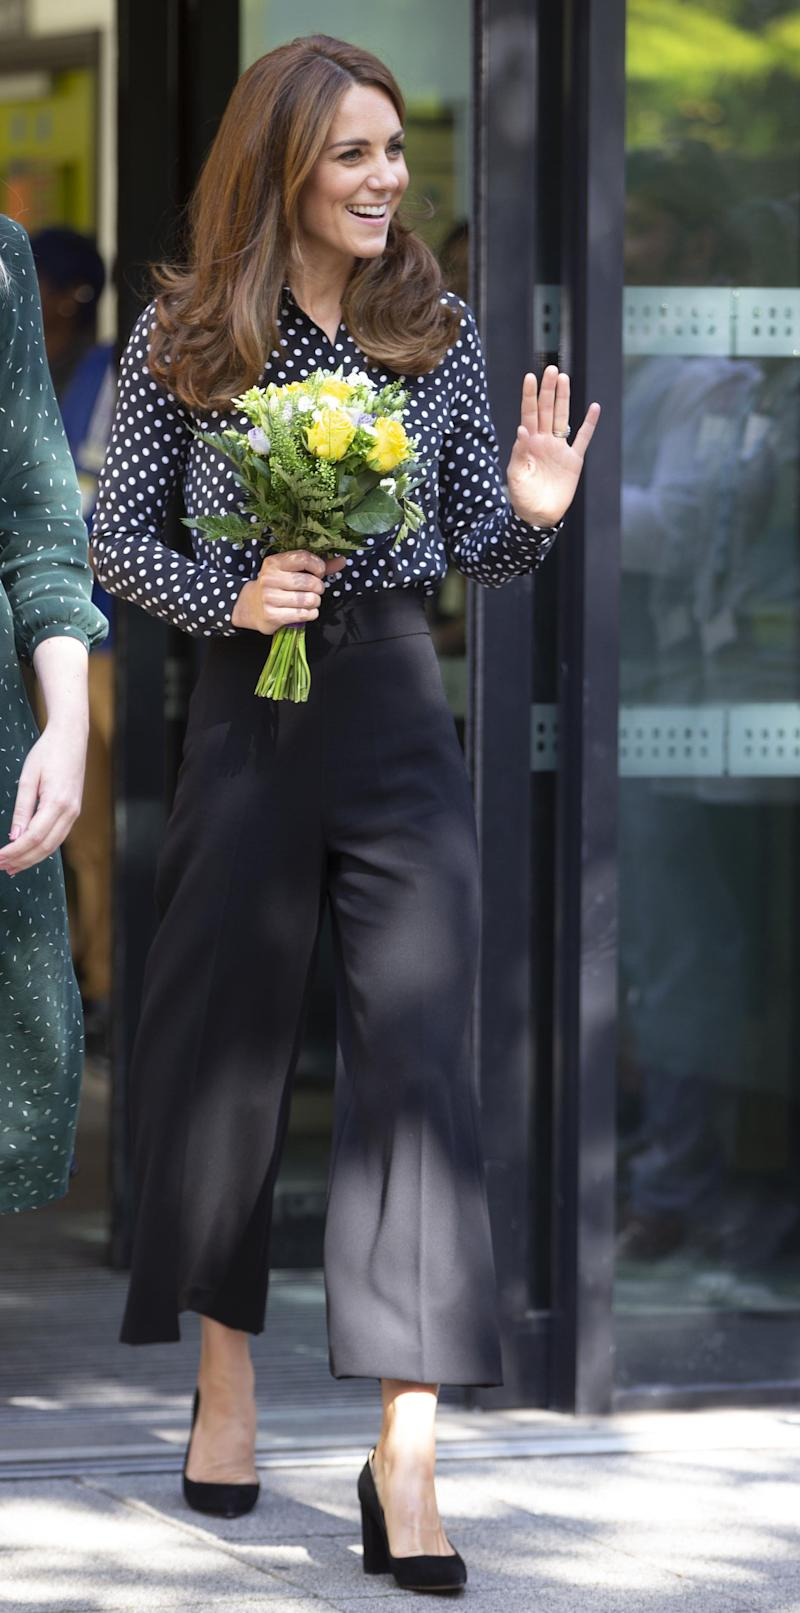 In September last year Kate wore the trousers with a polka dot blouse and heels. (Getty images)